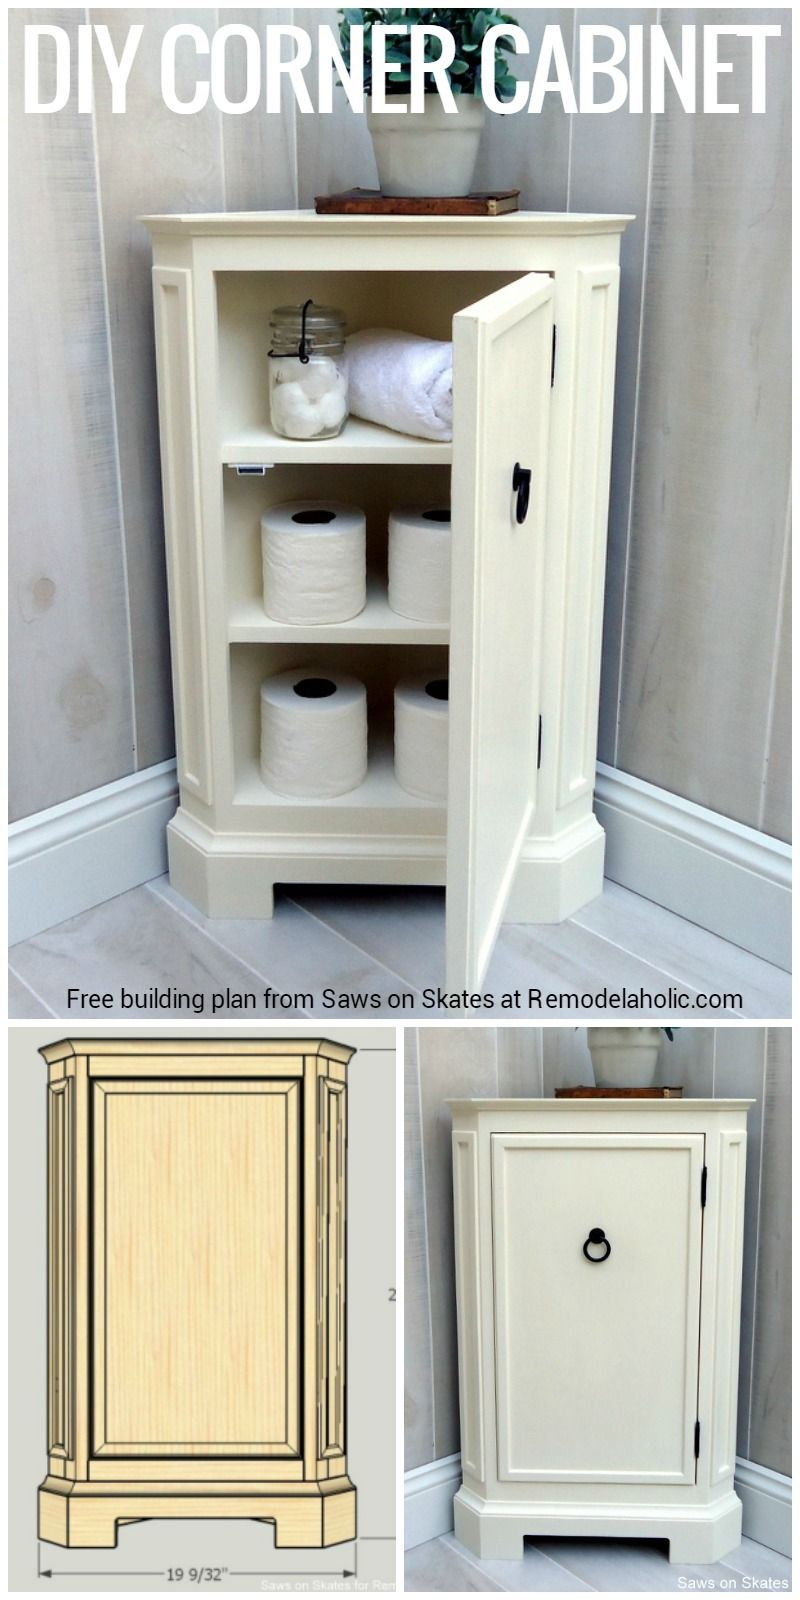 Build This Catalog Inspired Corner Cabinet With Free pertaining to size 800 X 1600